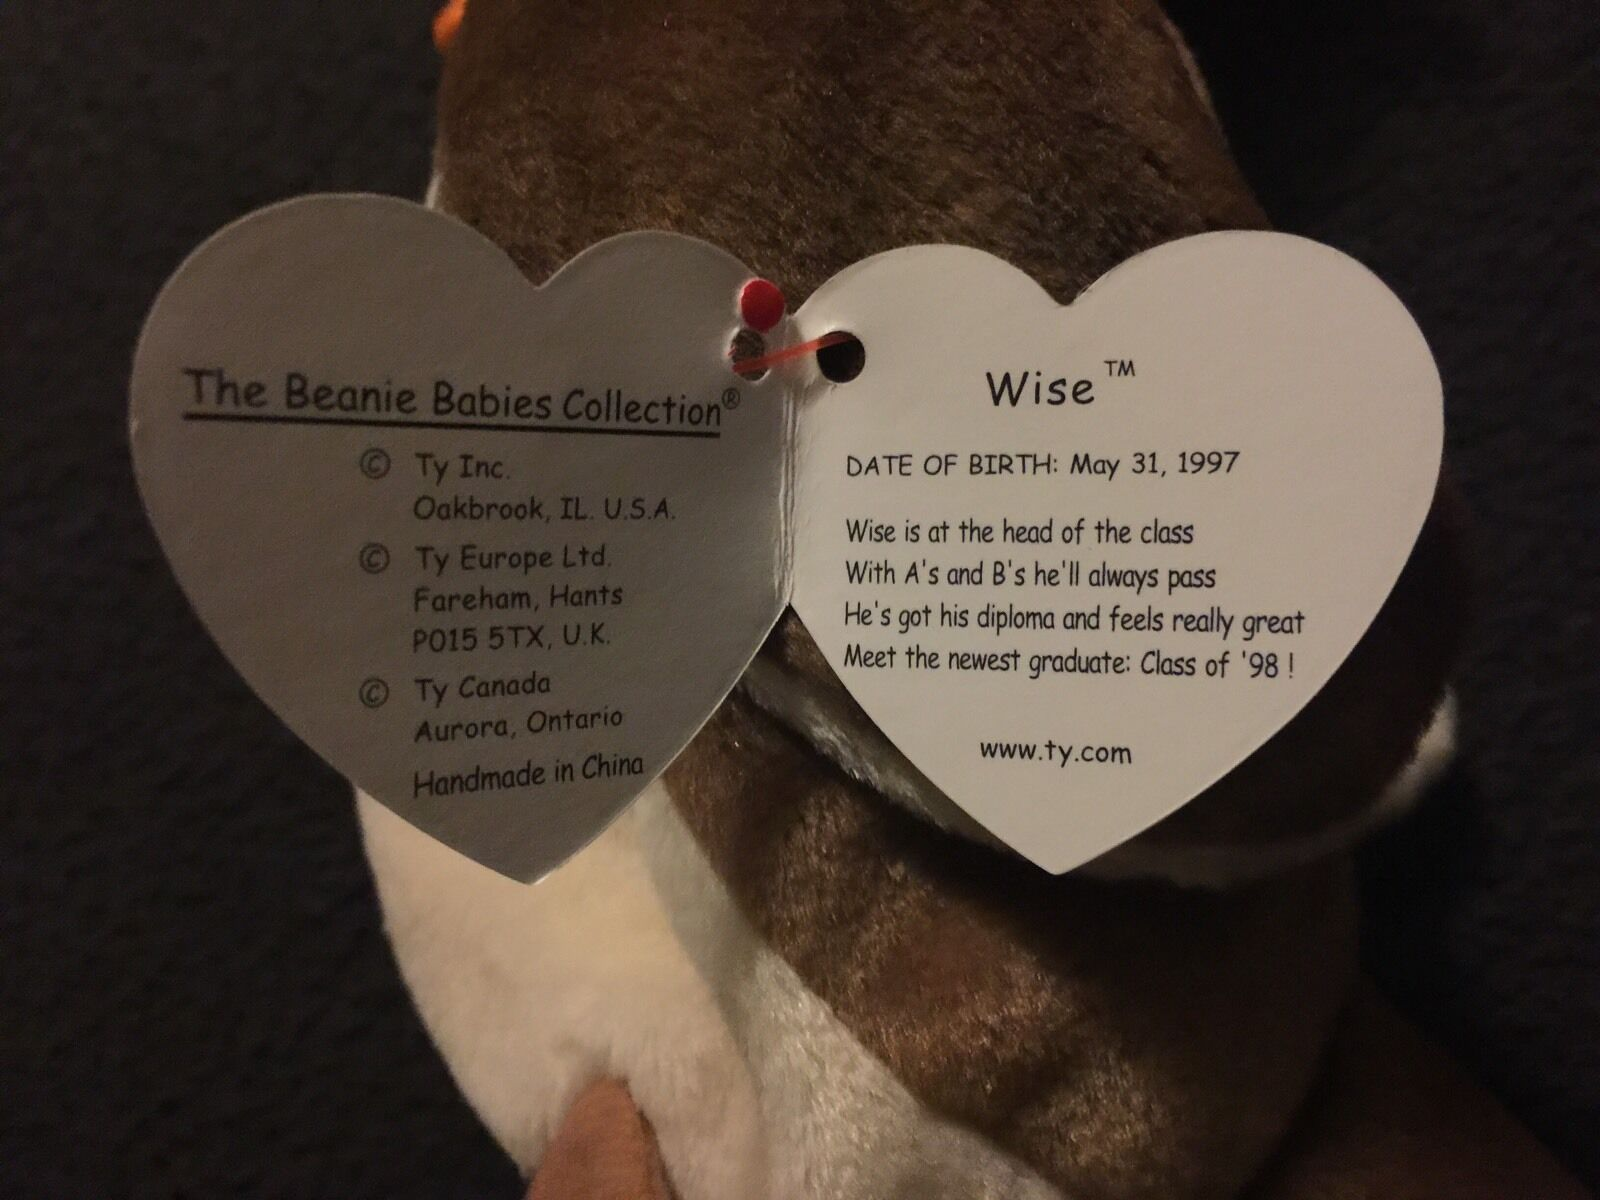 Rare Ty Wise Class Of '98 Beanie Beanie Beanie Babies Tag Date And Punctuation Errors c4a988